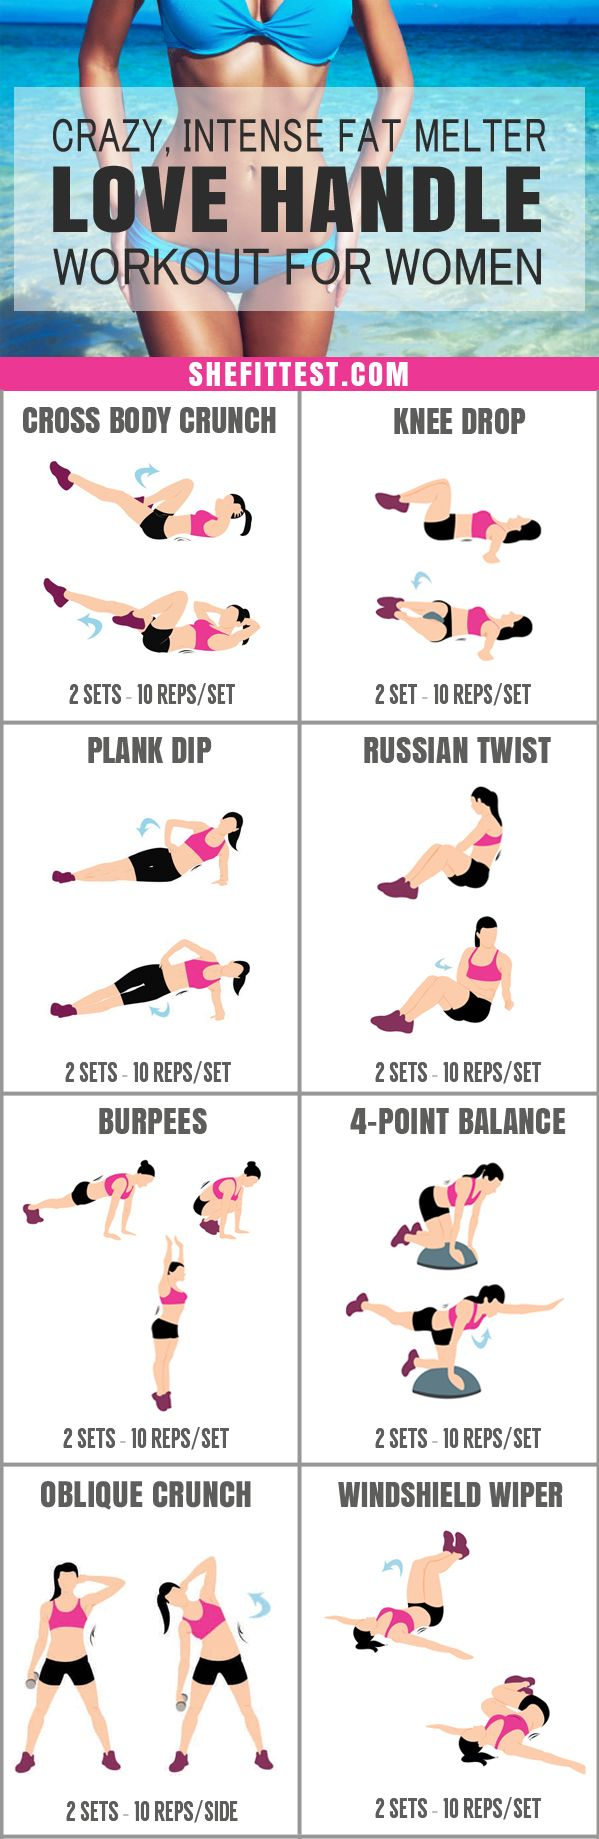 11 Amazing Lazy Girl Workouts To Get Rid of Love Handles In A Week